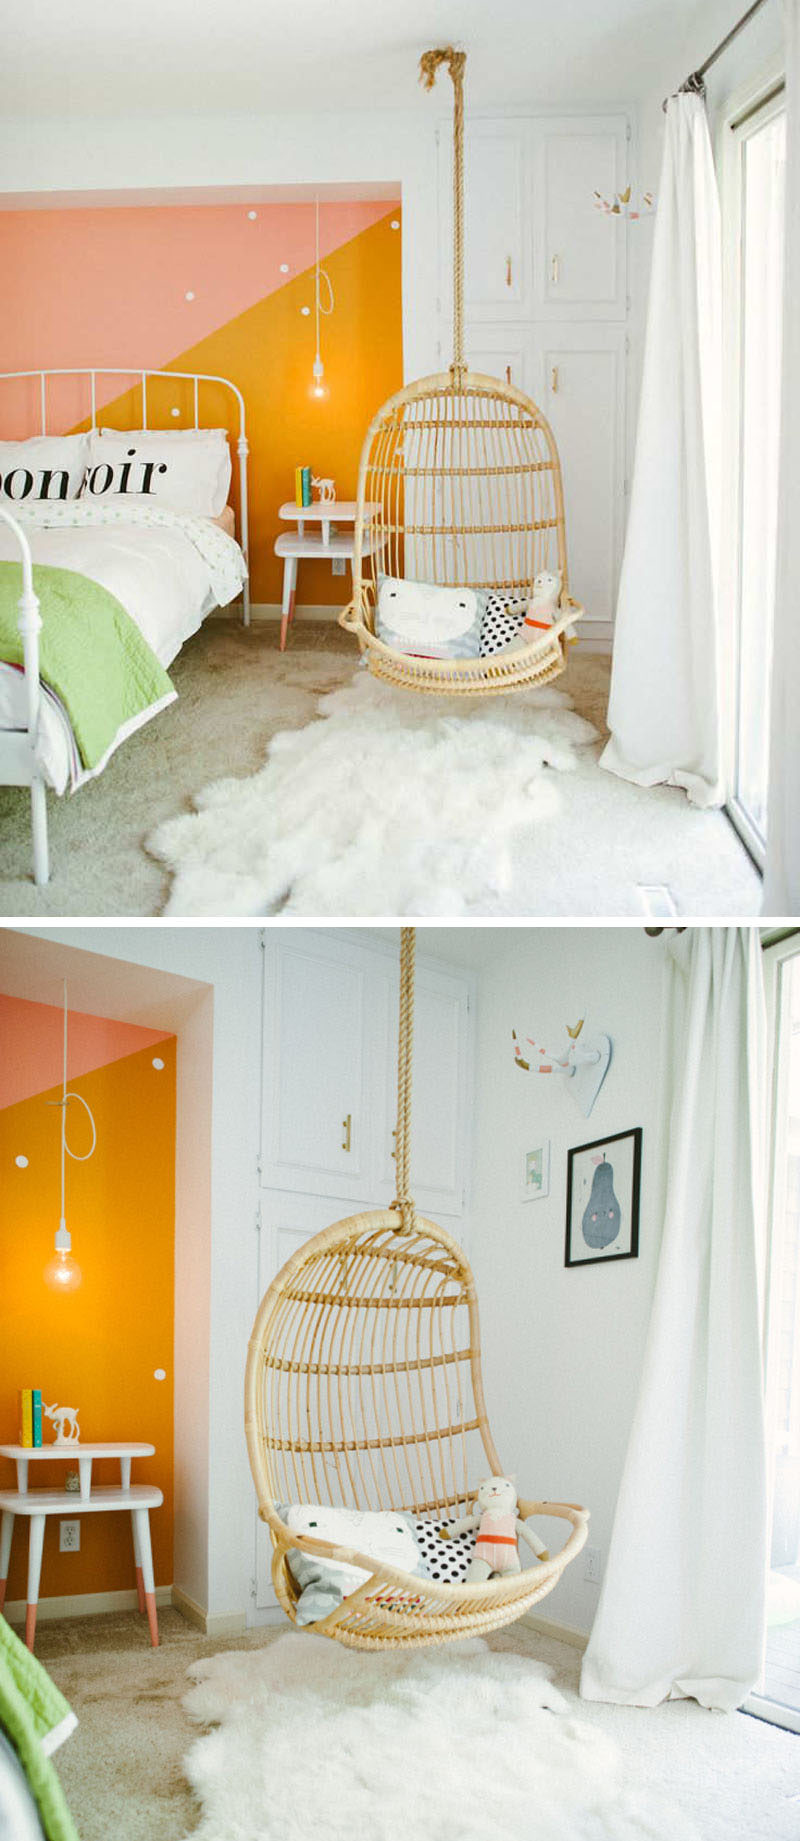 land of nod high chair doll rail beadboard paneling cute bedroom decorating ideas for modern girls | contemporist